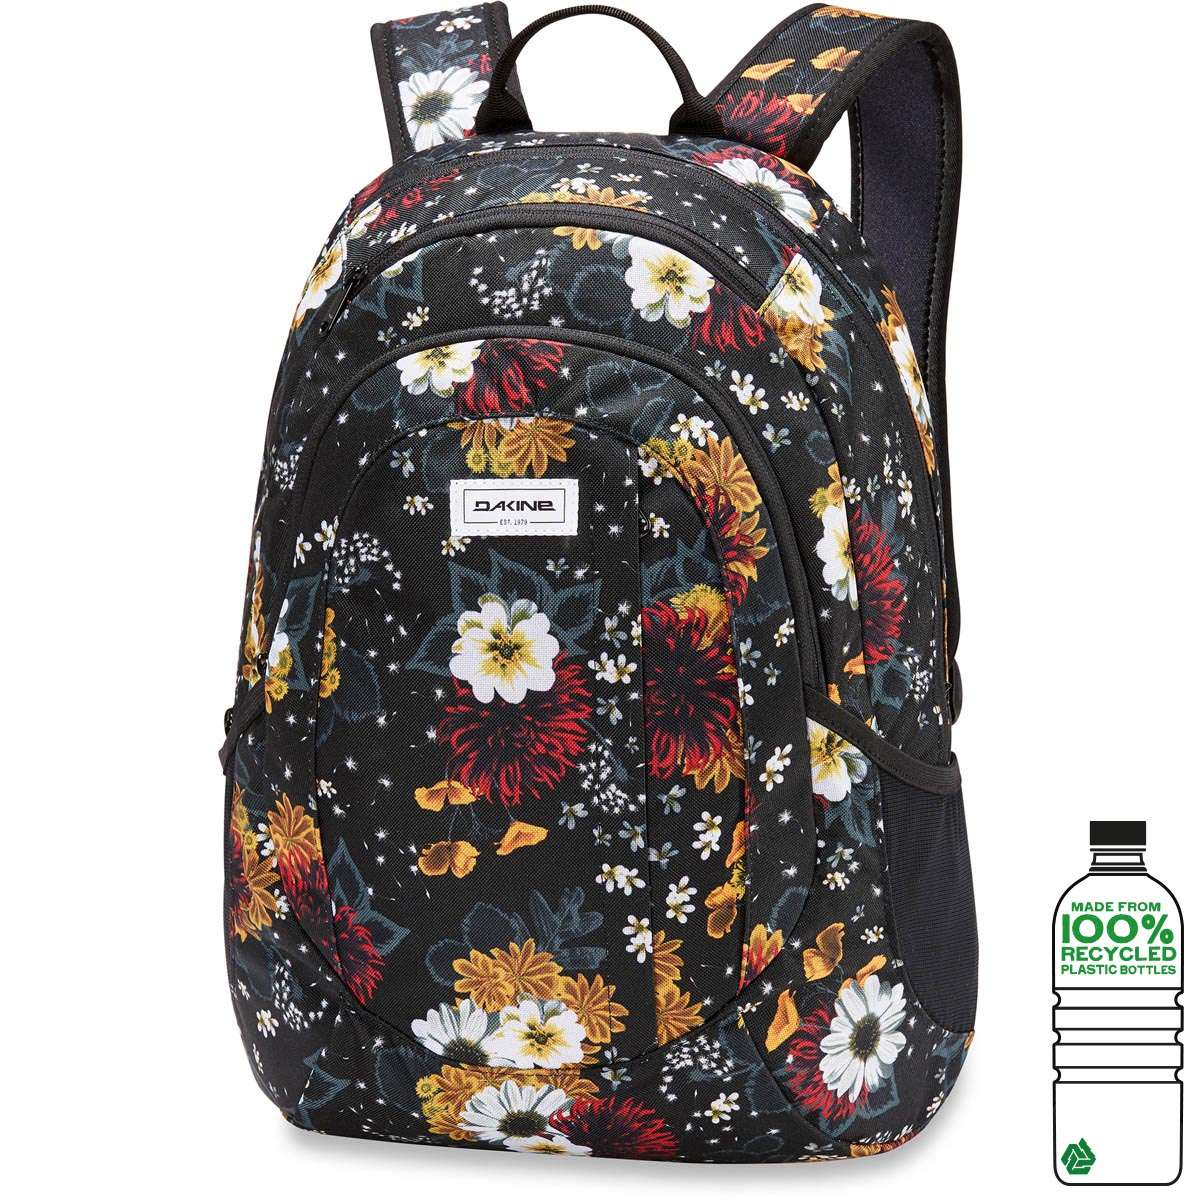 Dakine Garden 20L Backpack Winter Daisy  bfb7b5b2b55